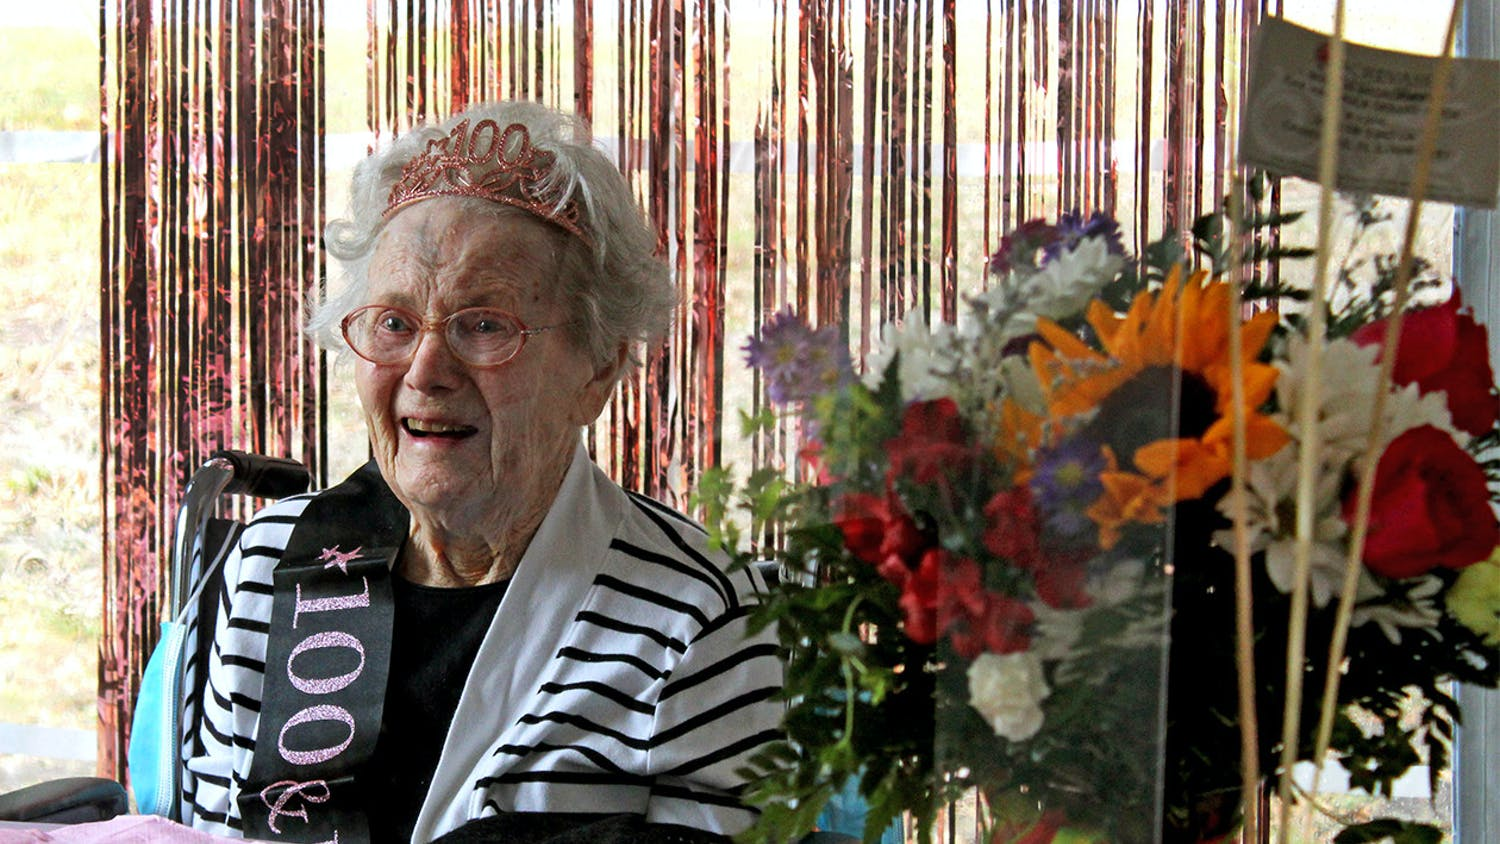 Marion Broadaway smiles as she tells stories of her life to family members and reporters at her 100th birthday celebration on Friday, Feb. 5, 2021.